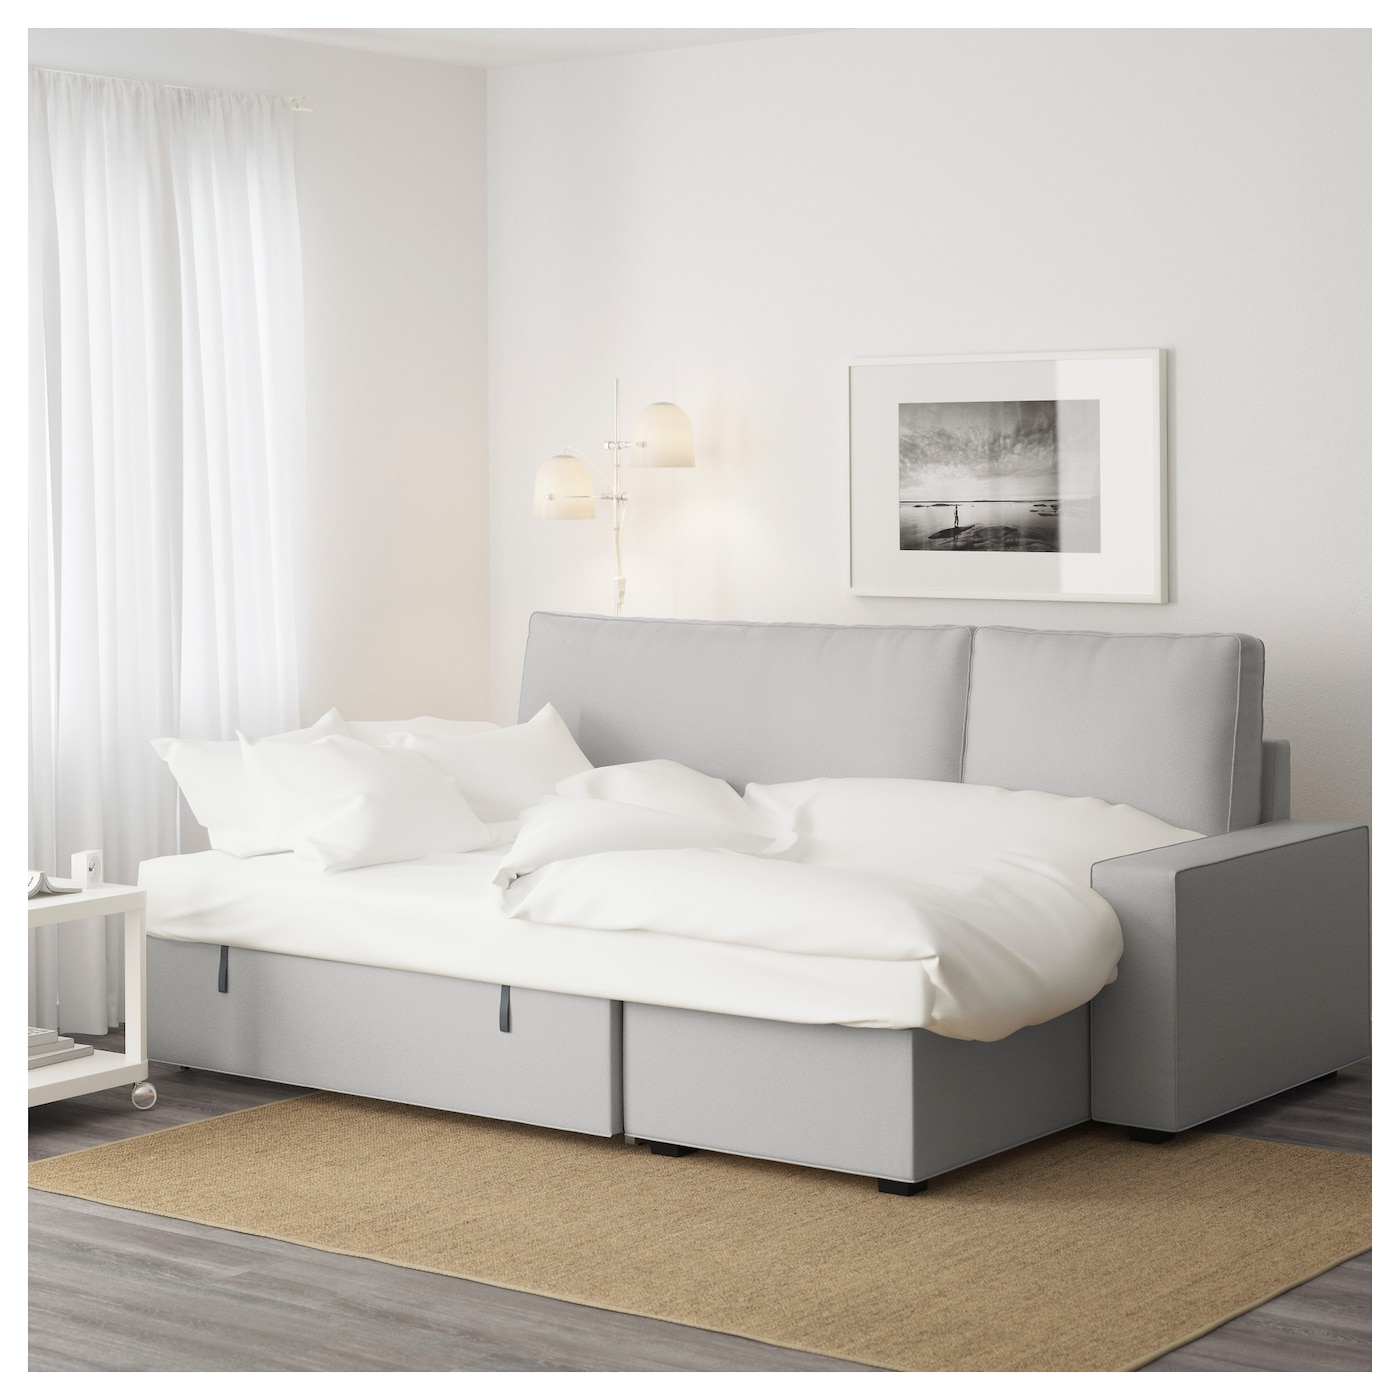 Vilasund sofa bed with chaise longue ramna light grey ikea for Chaise longue beds